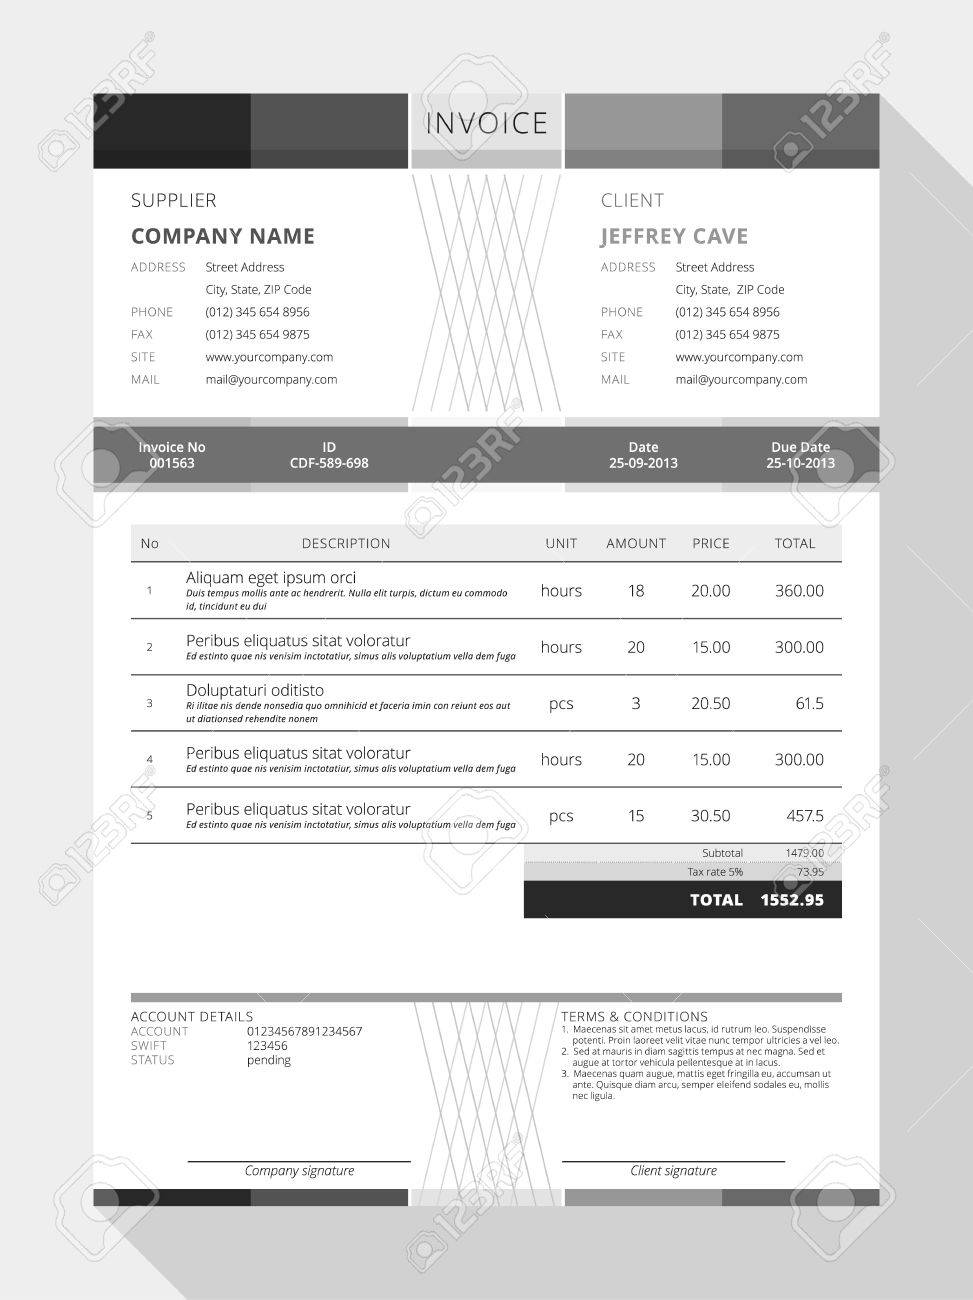 Howcanigettallerus  Stunning Design An Invoice  Professional Graphic Design Invoice  With Remarkable Vector Customizable Invoice Form Template Design Vector   Design An Invoice With Amusing Requisitioner On Invoice Also Sample Ebay Invoice In Addition Billing Invoices Free Printable And Invoice Generator Online Free As Well As Invoice Prices For New Trucks Additionally Hsbc Invoice Finance Login From Happytomco With Howcanigettallerus  Remarkable Design An Invoice  Professional Graphic Design Invoice  With Amusing Vector Customizable Invoice Form Template Design Vector   Design An Invoice And Stunning Requisitioner On Invoice Also Sample Ebay Invoice In Addition Billing Invoices Free Printable From Happytomco